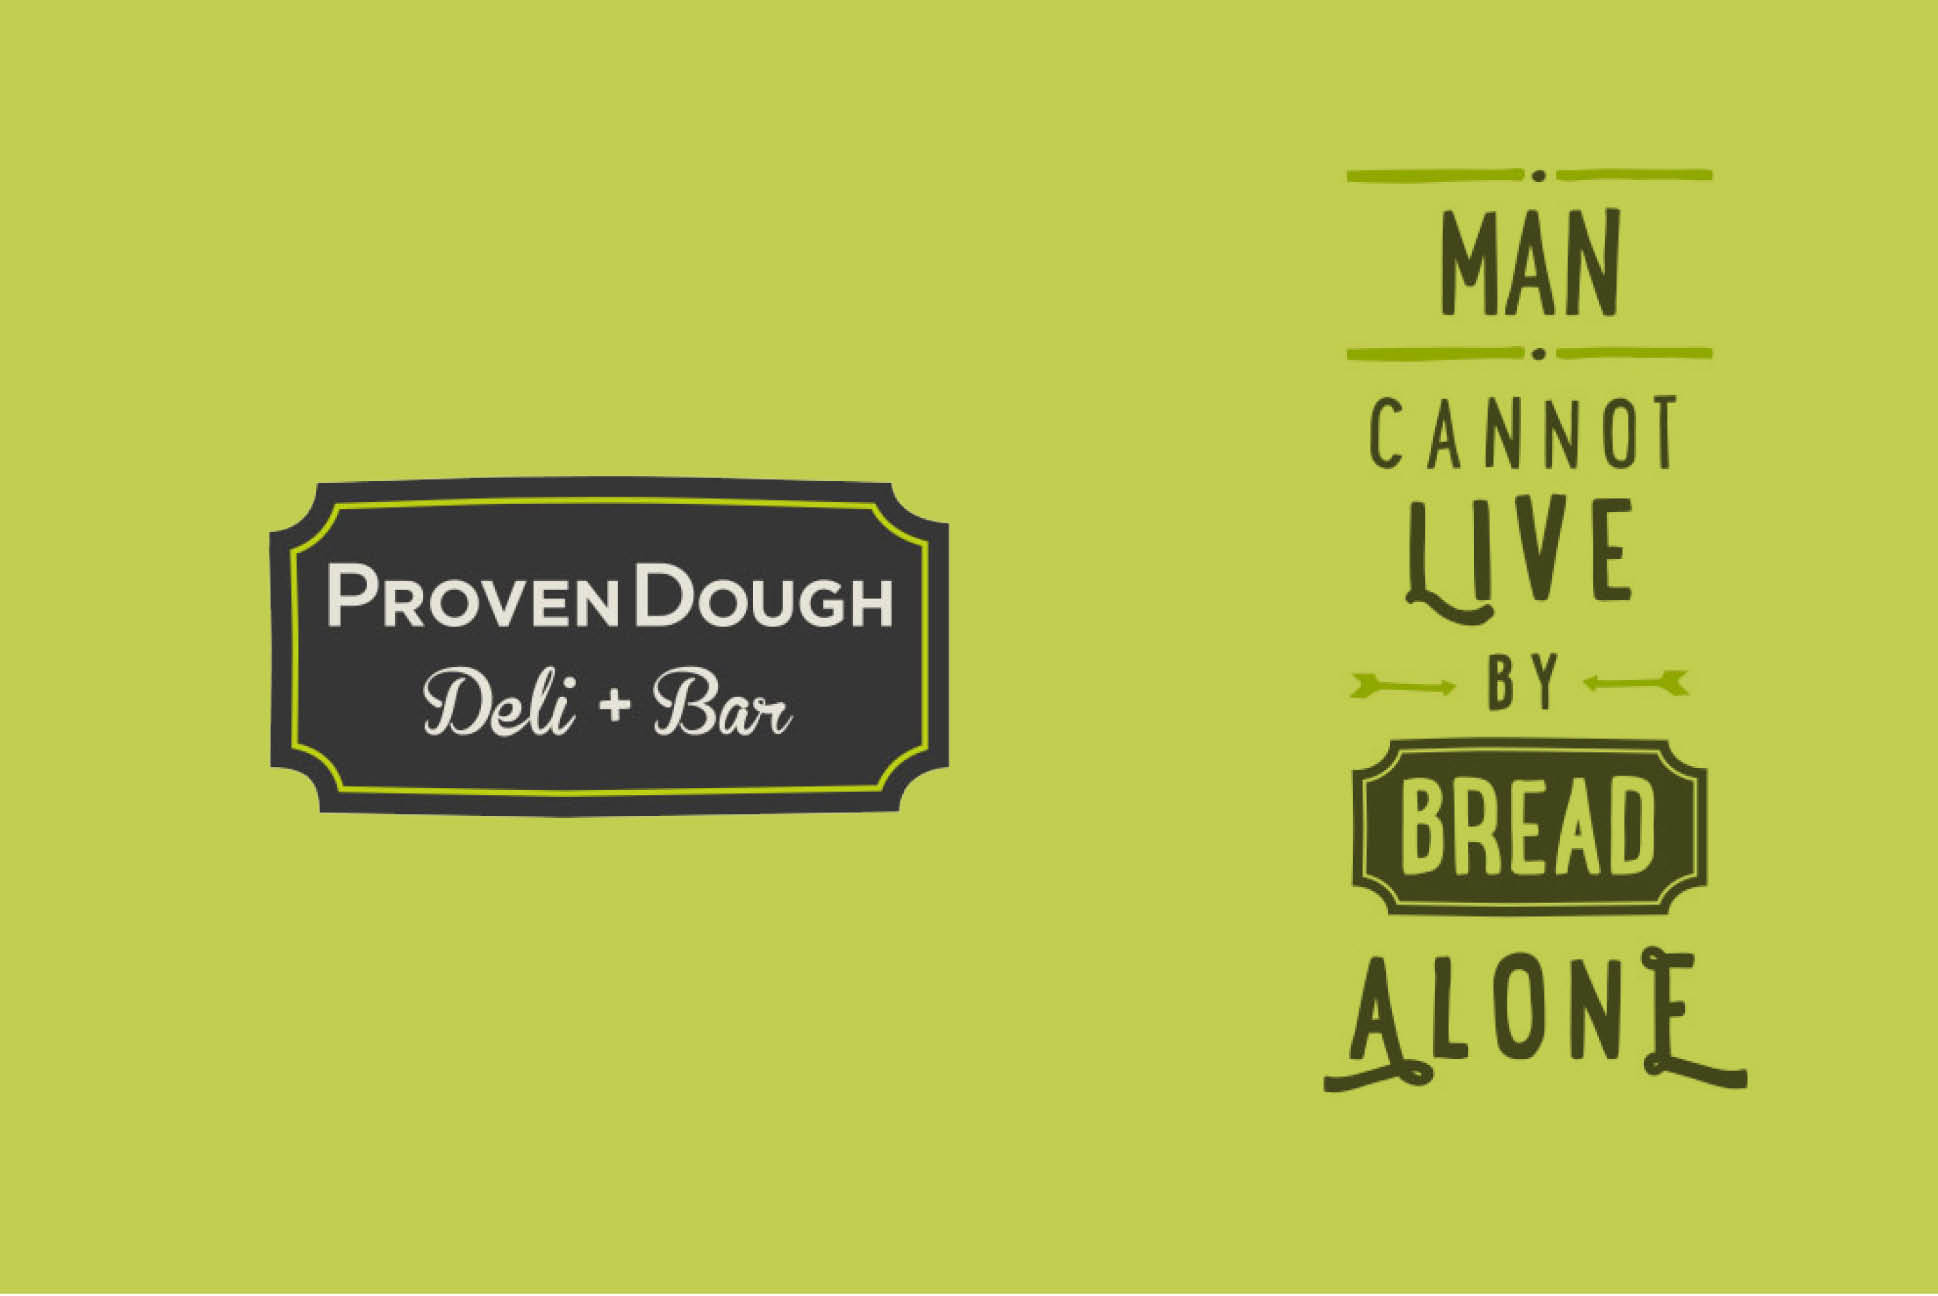 ProvenDough branding | Branding and Identity Design - Independent Marketing | IM London